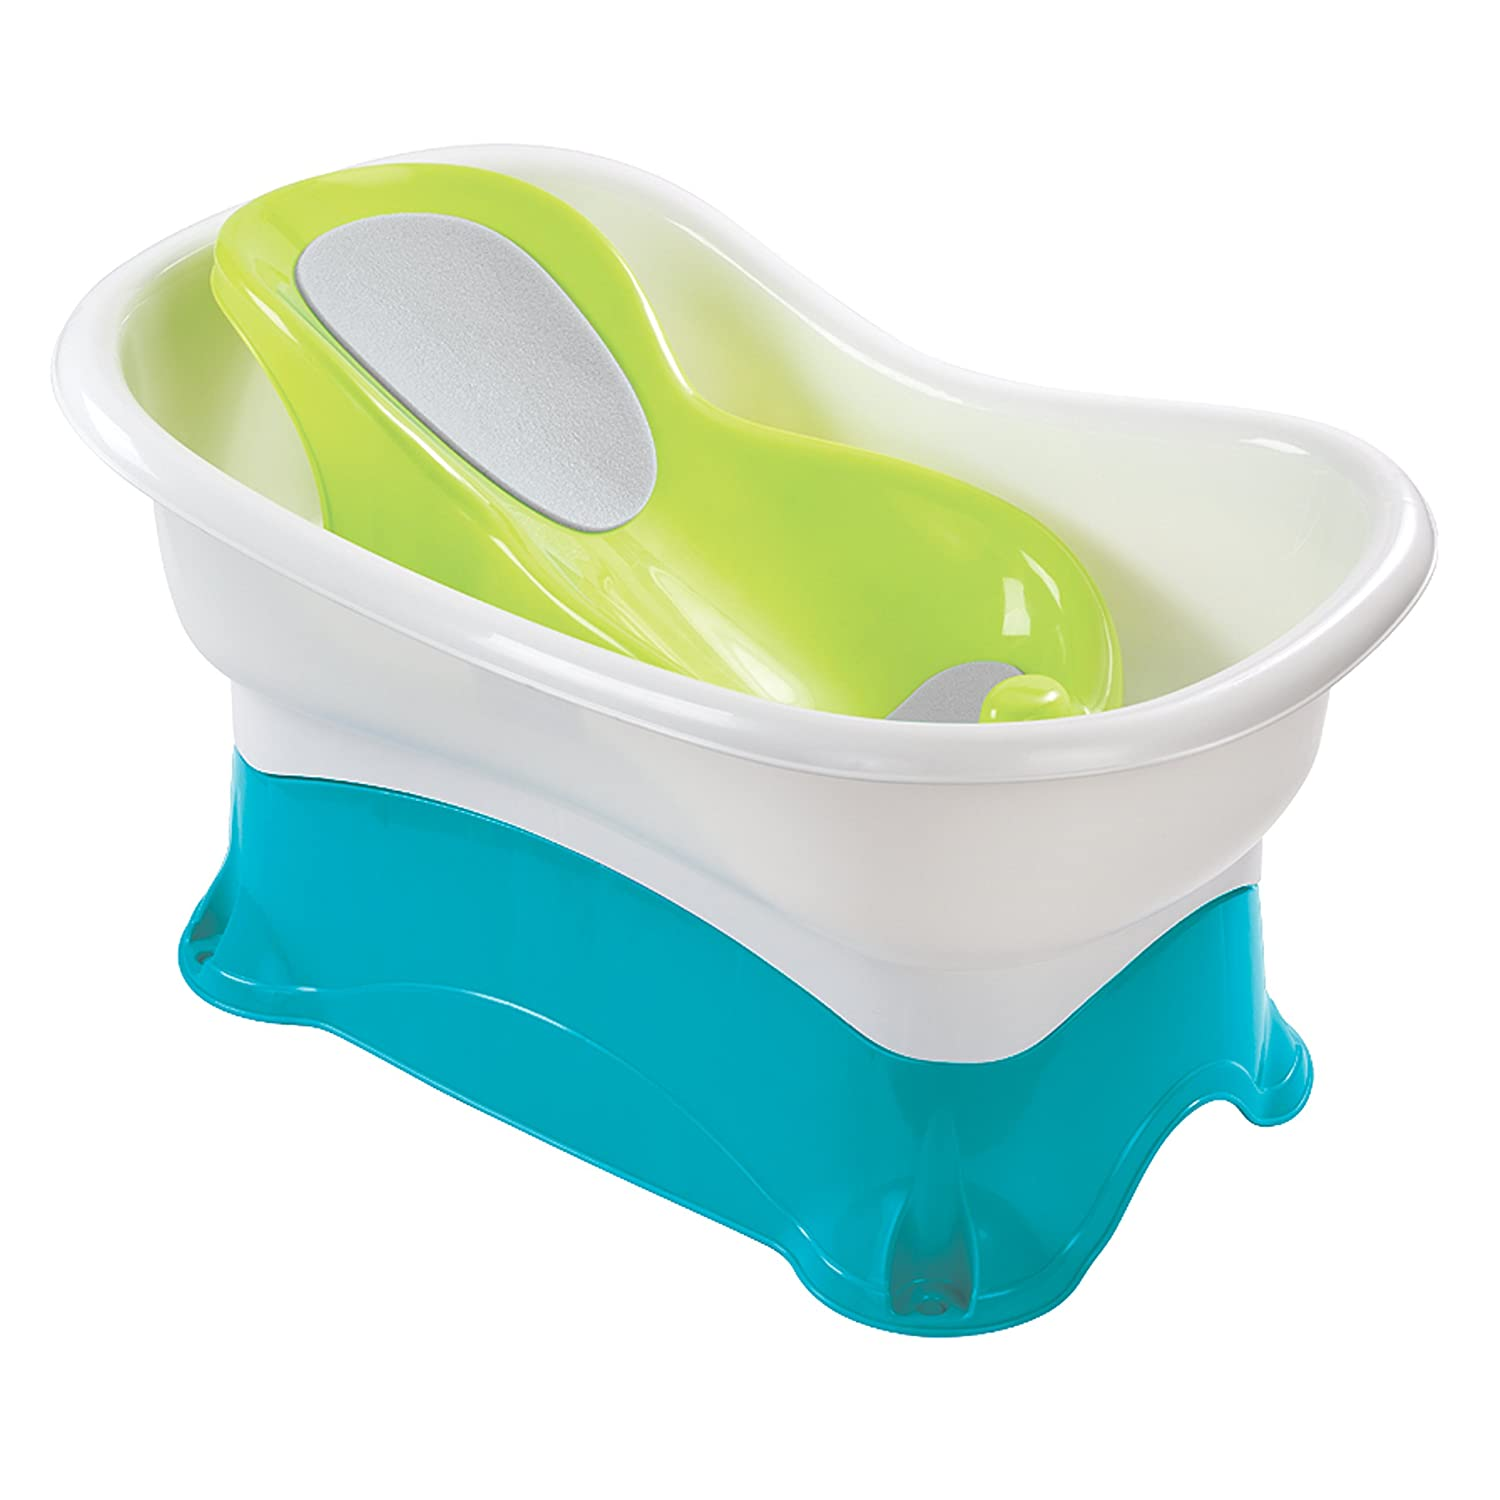 Amazon.com : Summer Infant Comfort Height Bath Tub : Baby